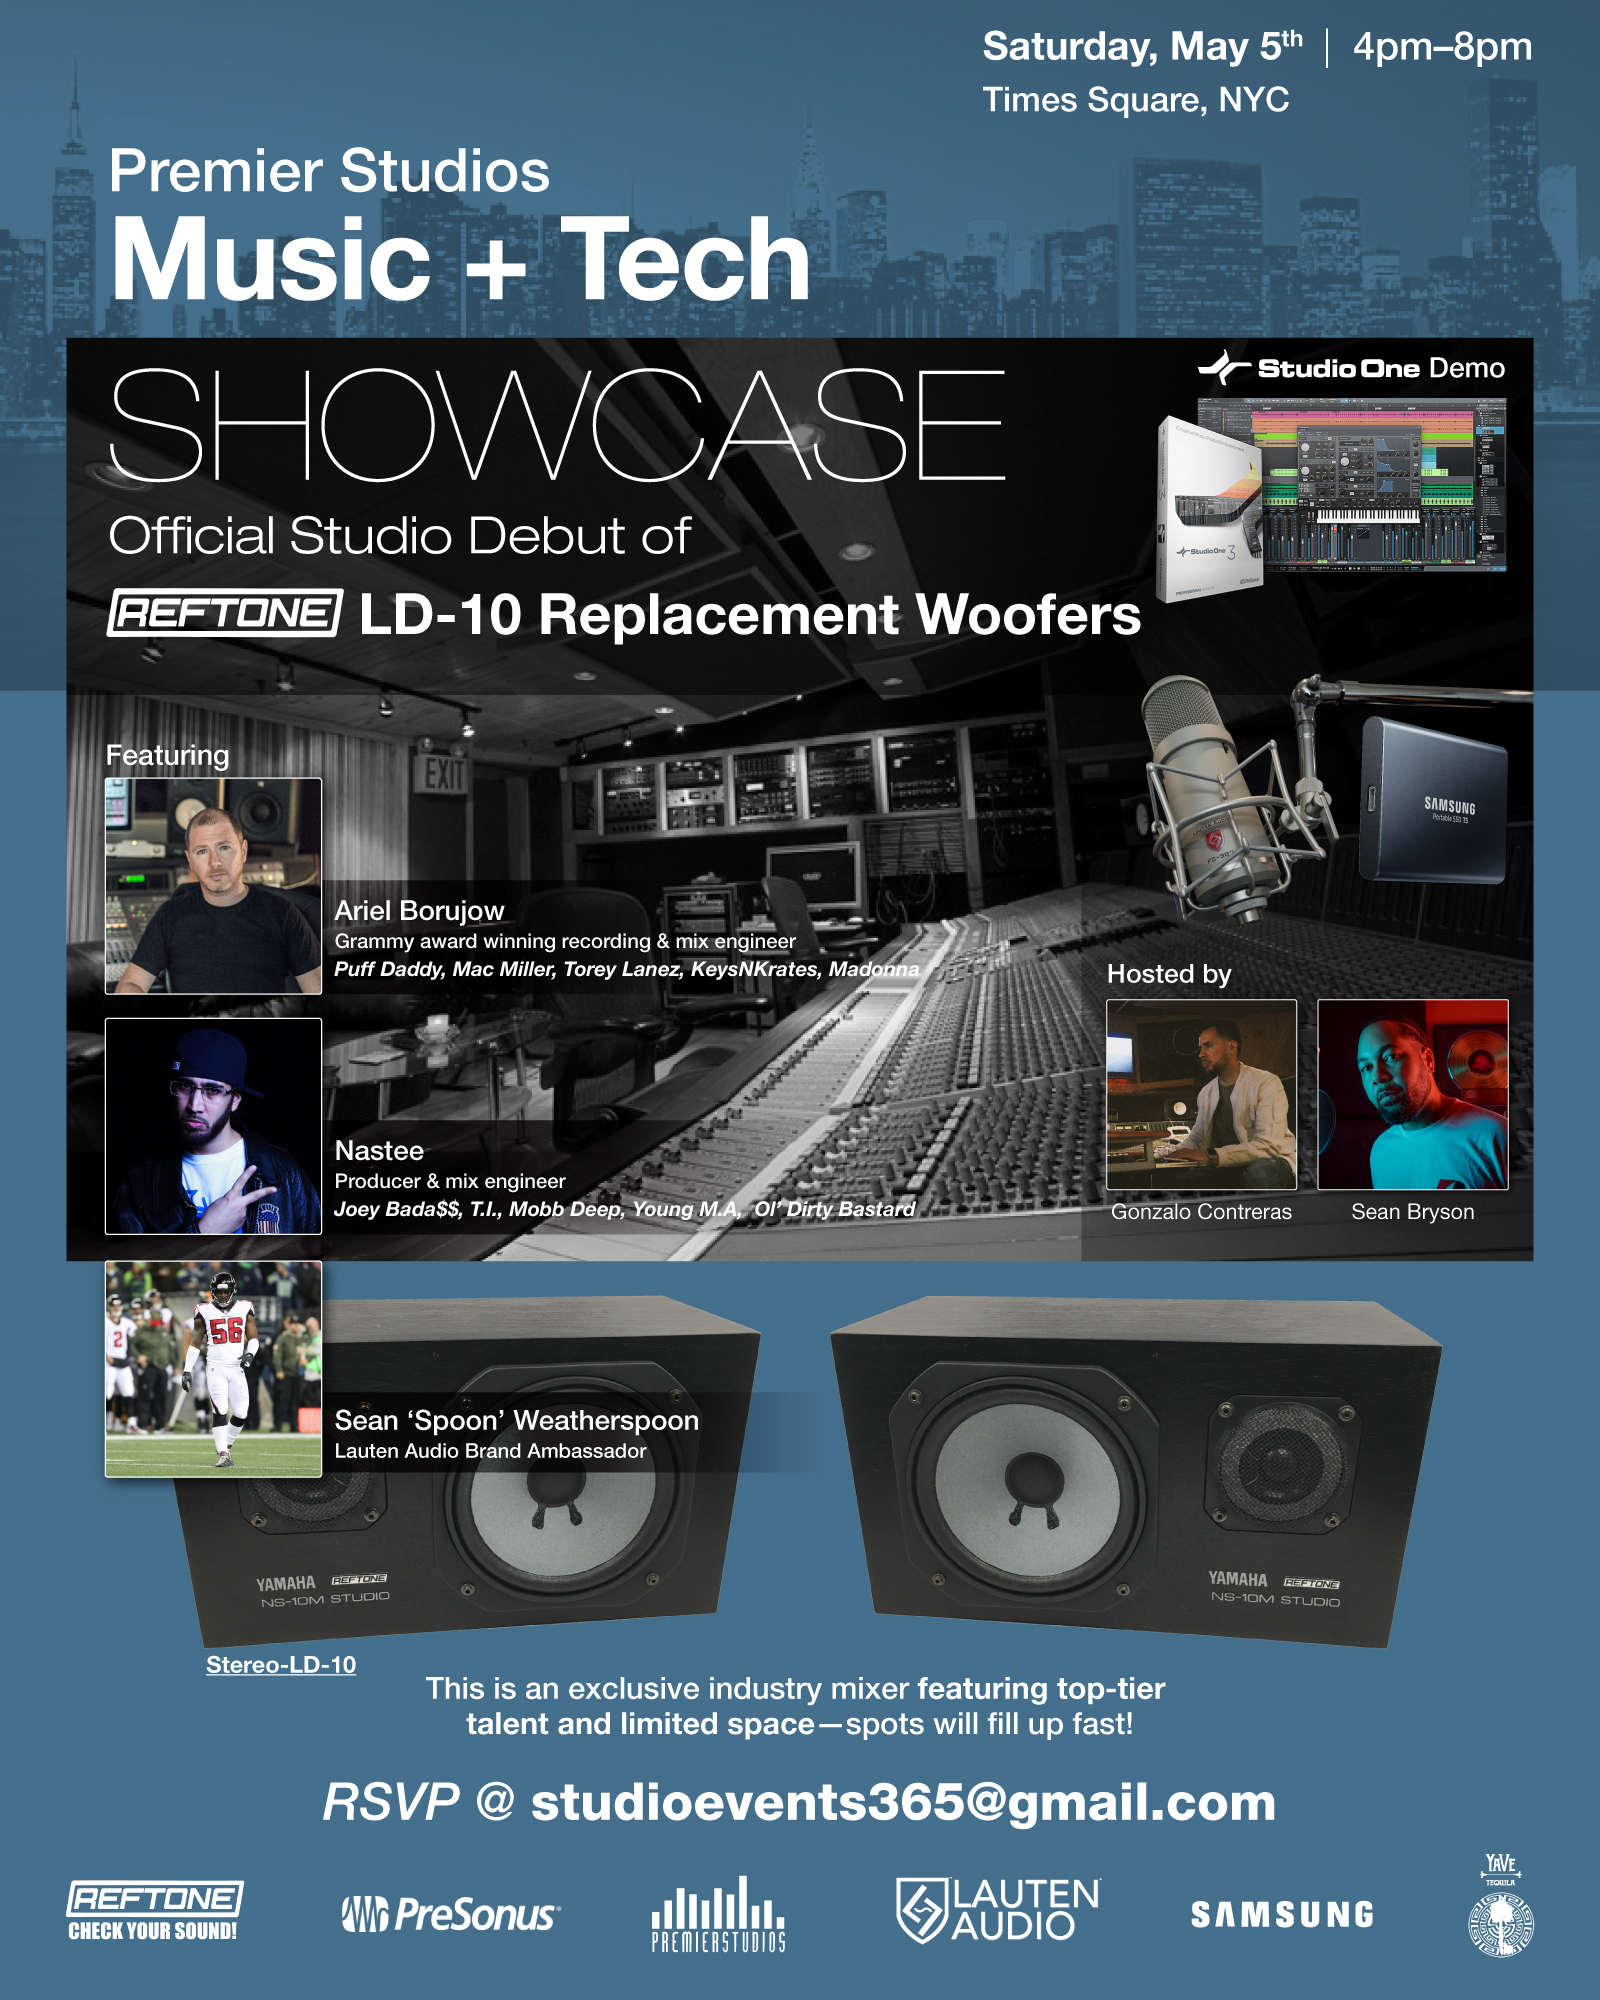 Music + Tech Showcase NYC - Reftone